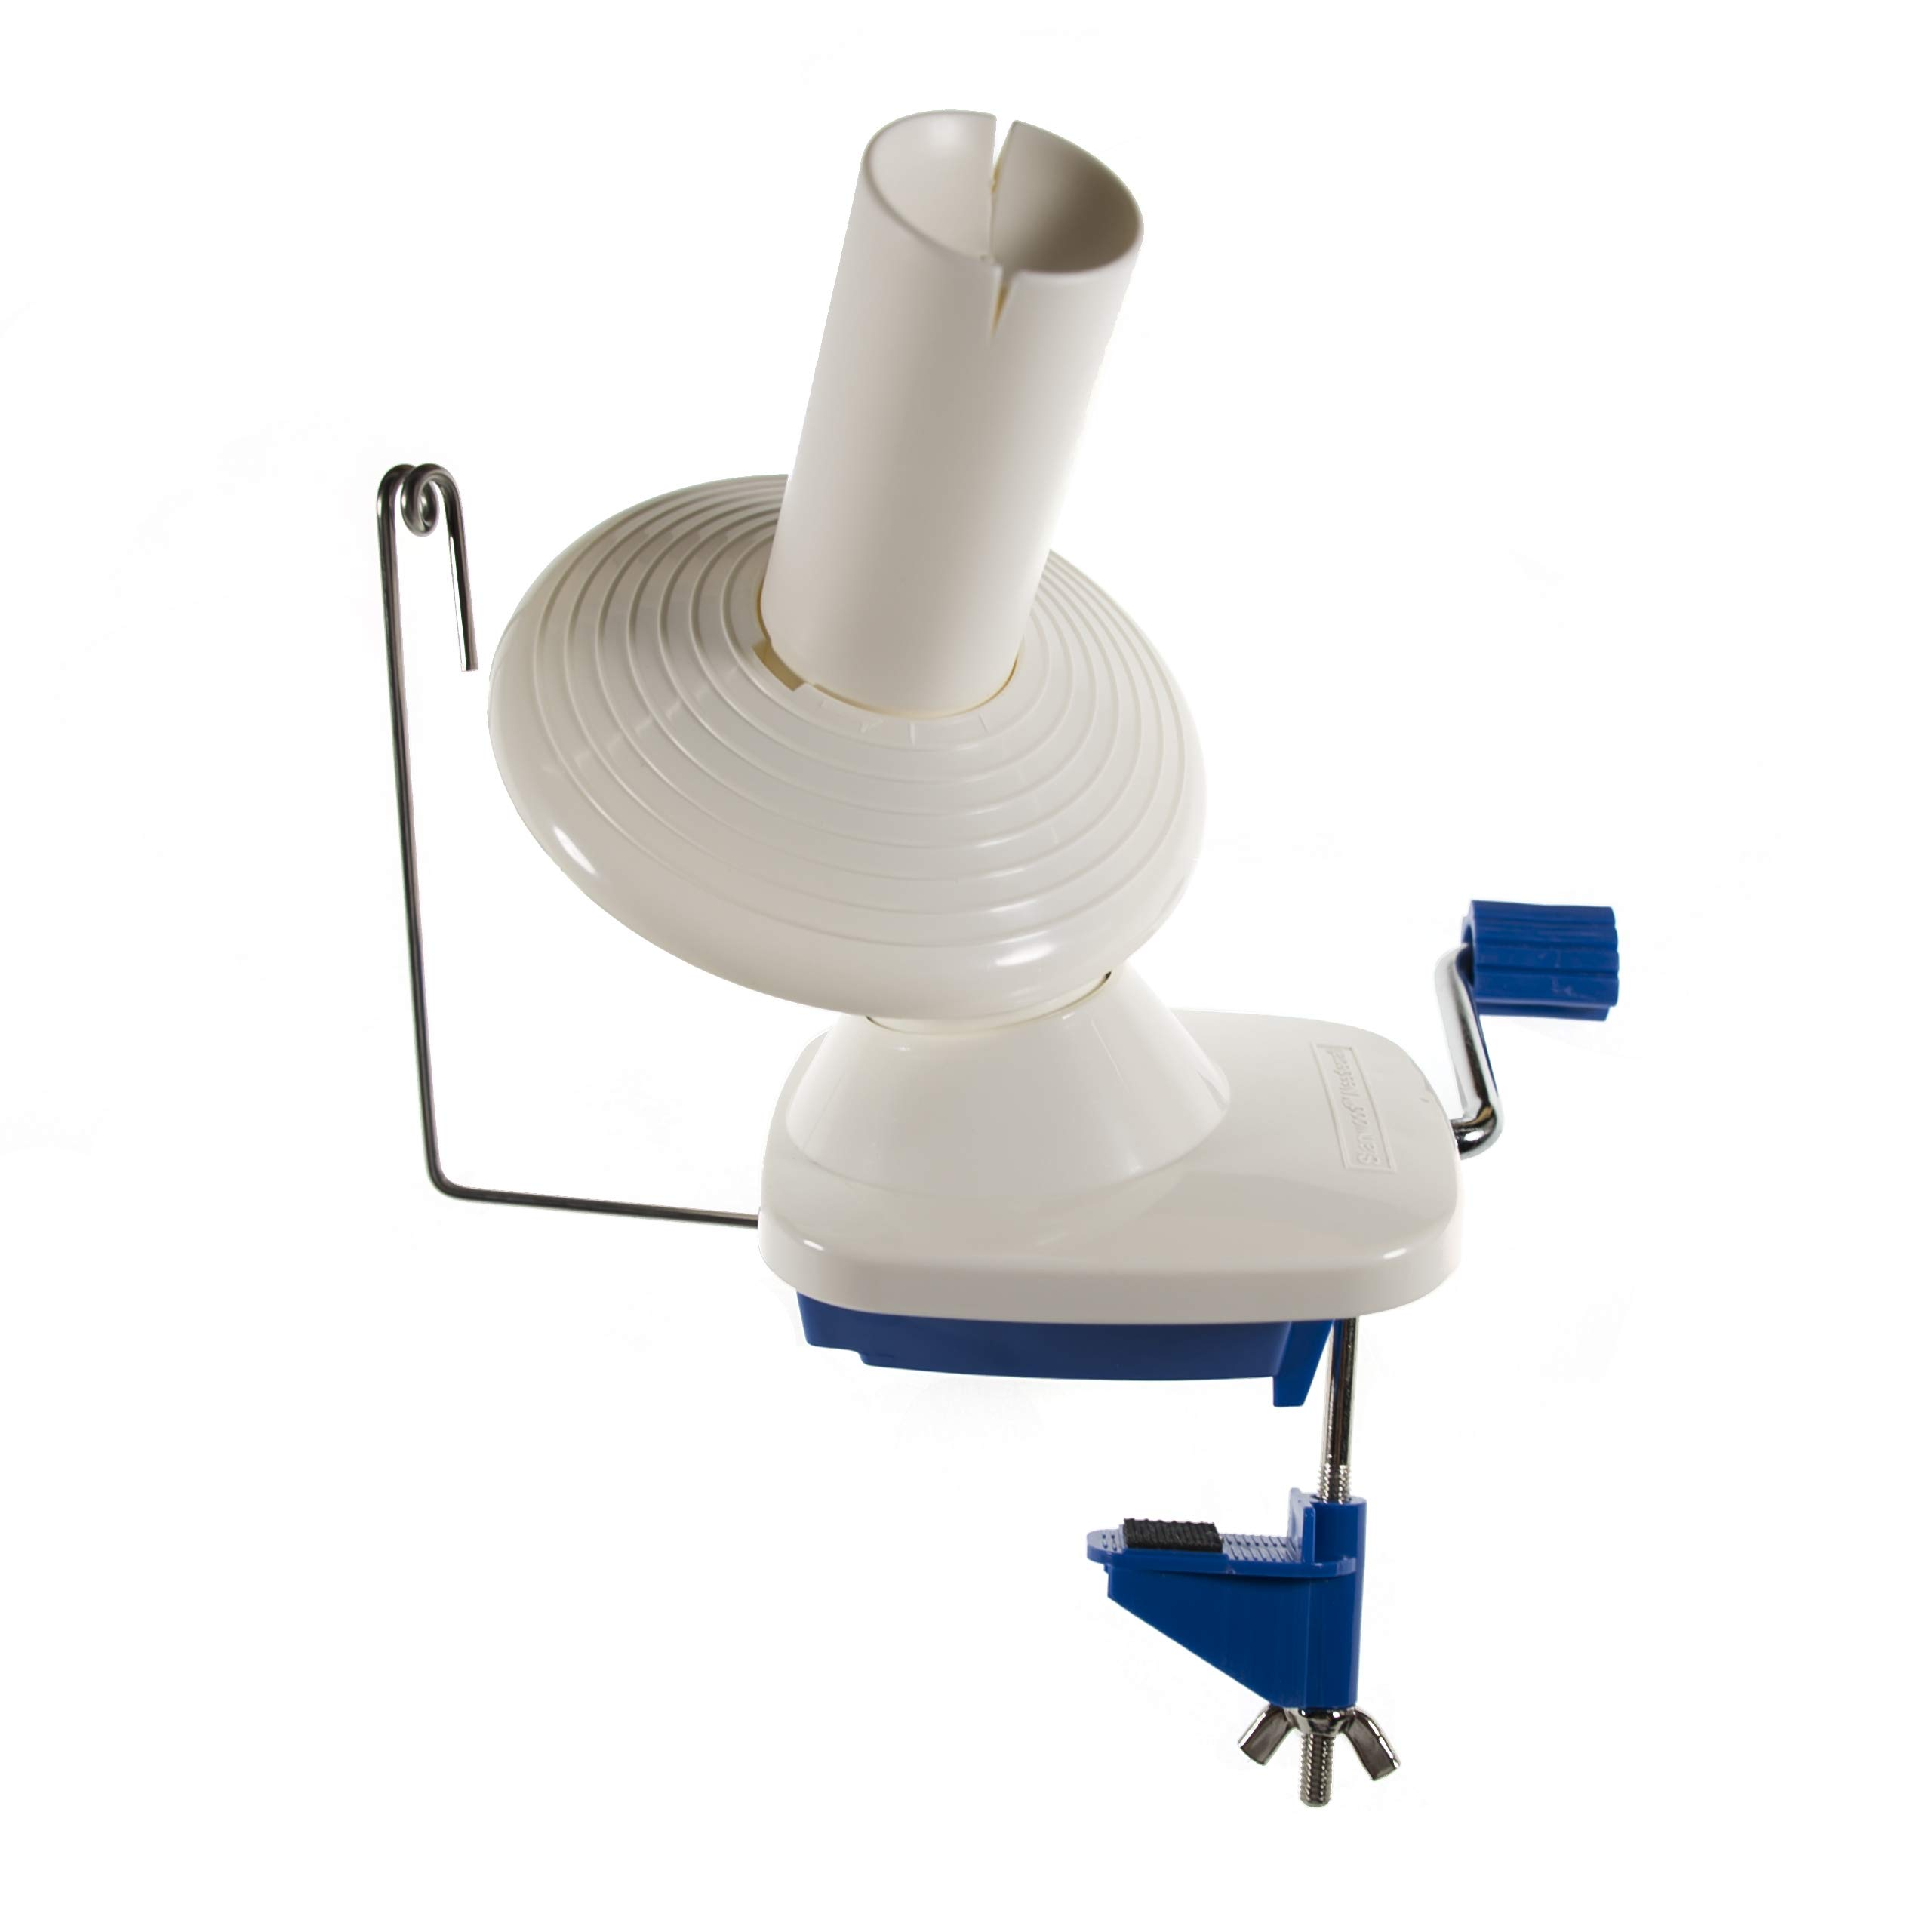 Stanwood Needlecraft YBW-A Hand-Operated Yarn Ball Winder, 4-Ounce by Stanwood Needlecraft